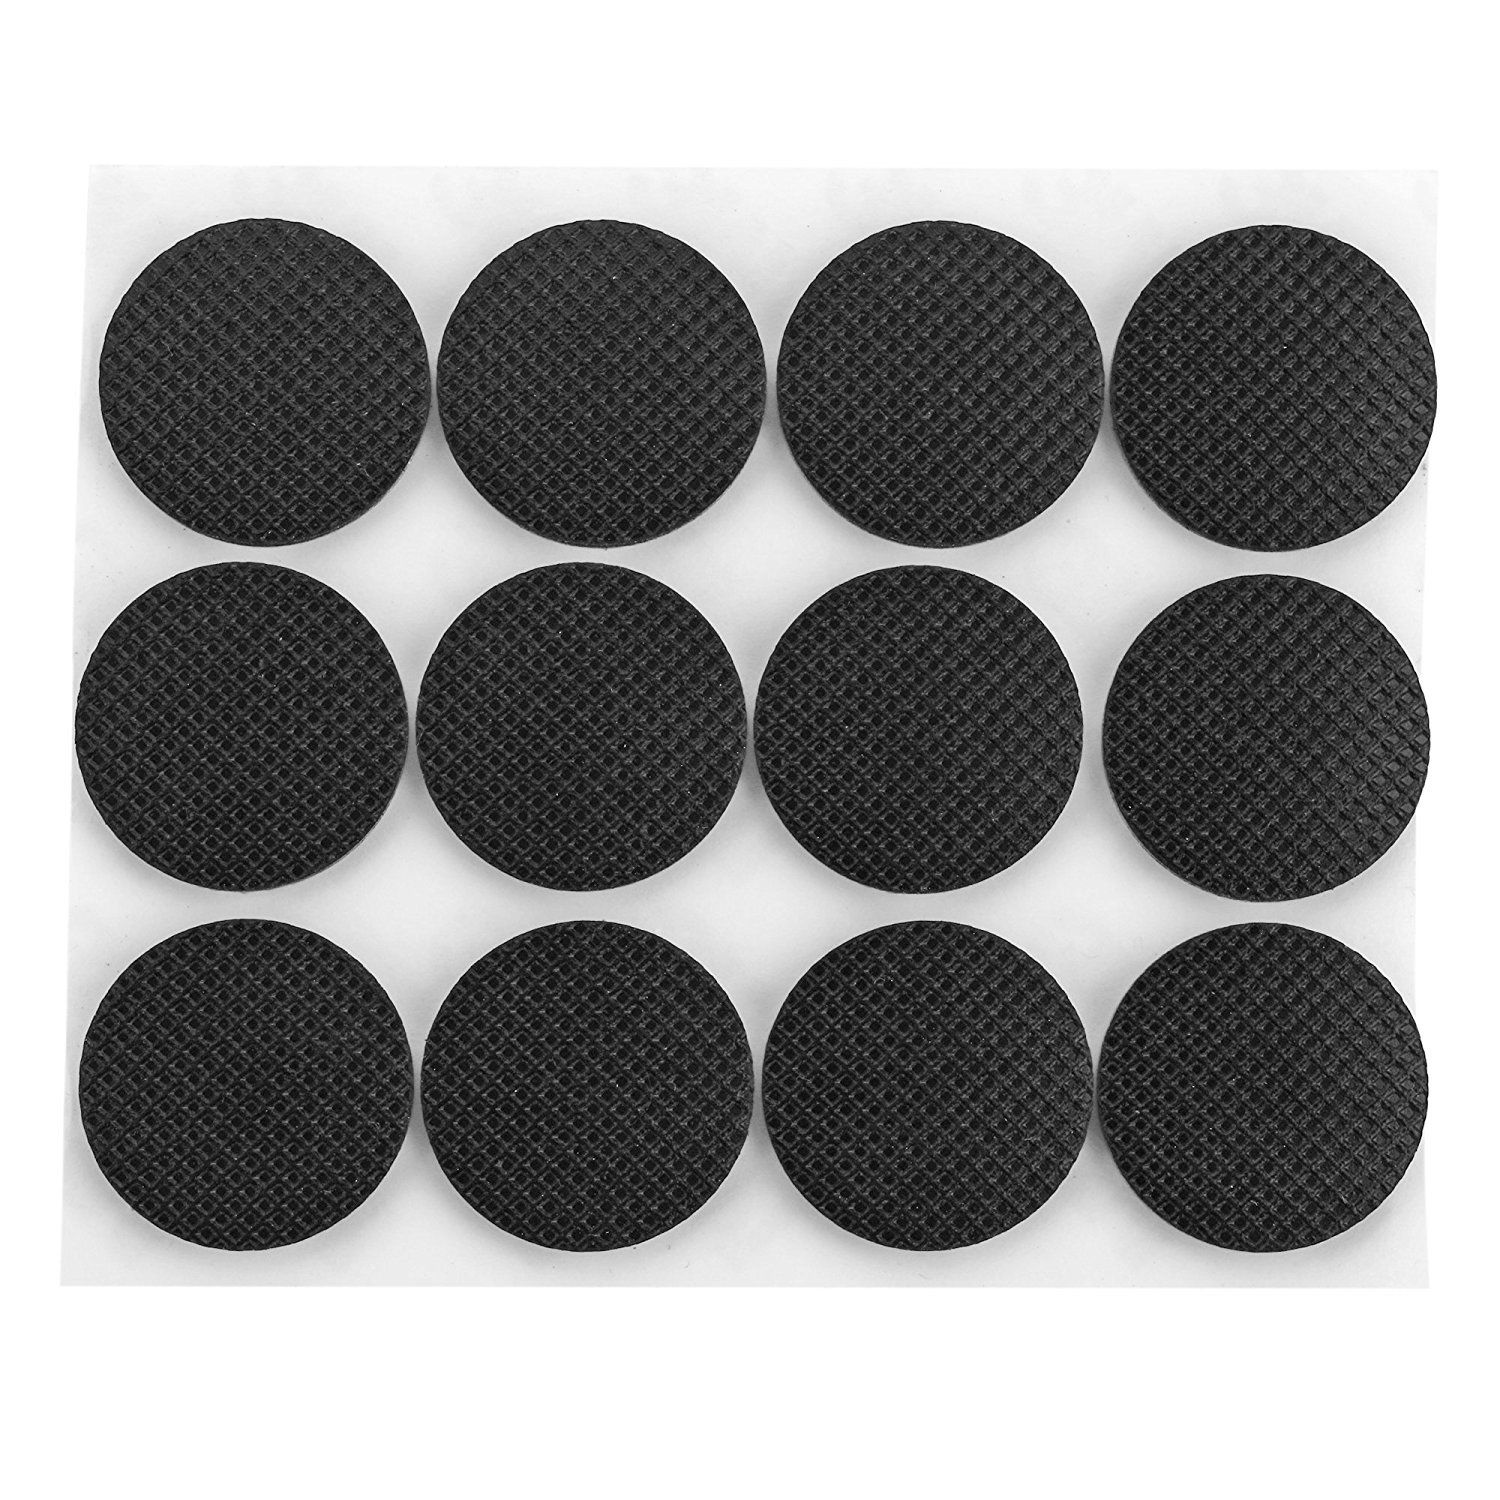 Vonoto 120pcs Self Stick Rubber Anti Skid Pad Value Pack Furniture And Floor Protectors Circular Dia Furniture Legs Furniture Floor Protectors Furniture Pads